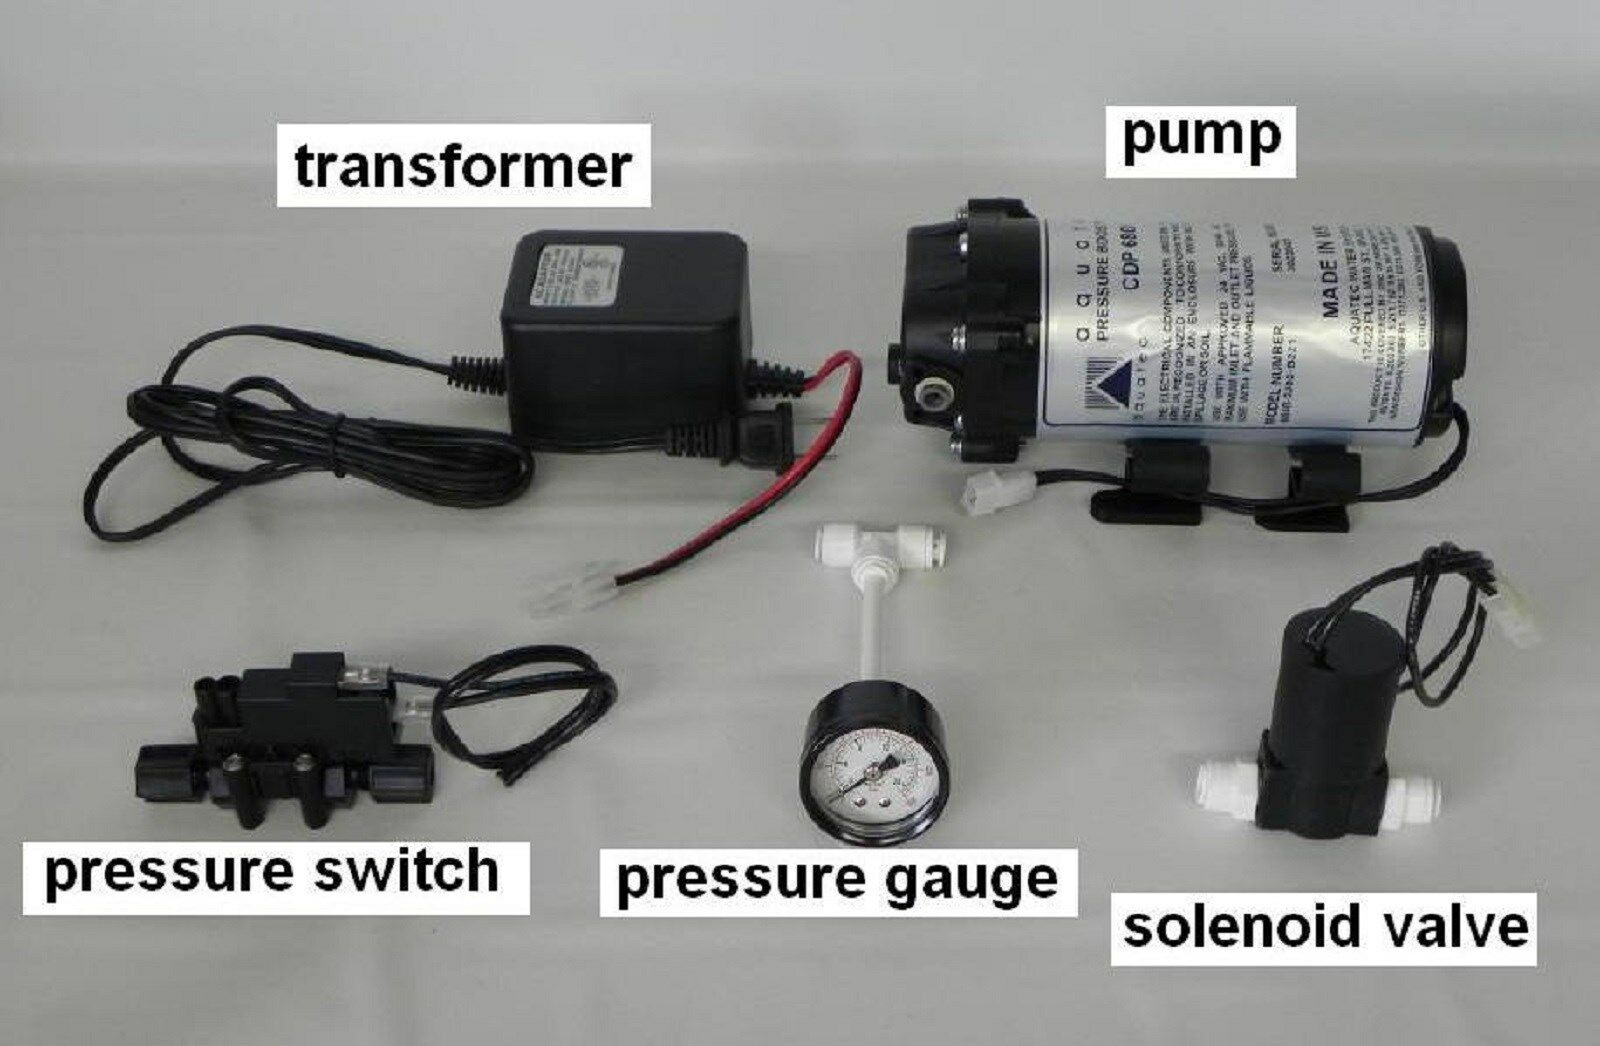 aquatec cdp 6800 booster pump set solenoid valve pressure switch ro water new. Black Bedroom Furniture Sets. Home Design Ideas